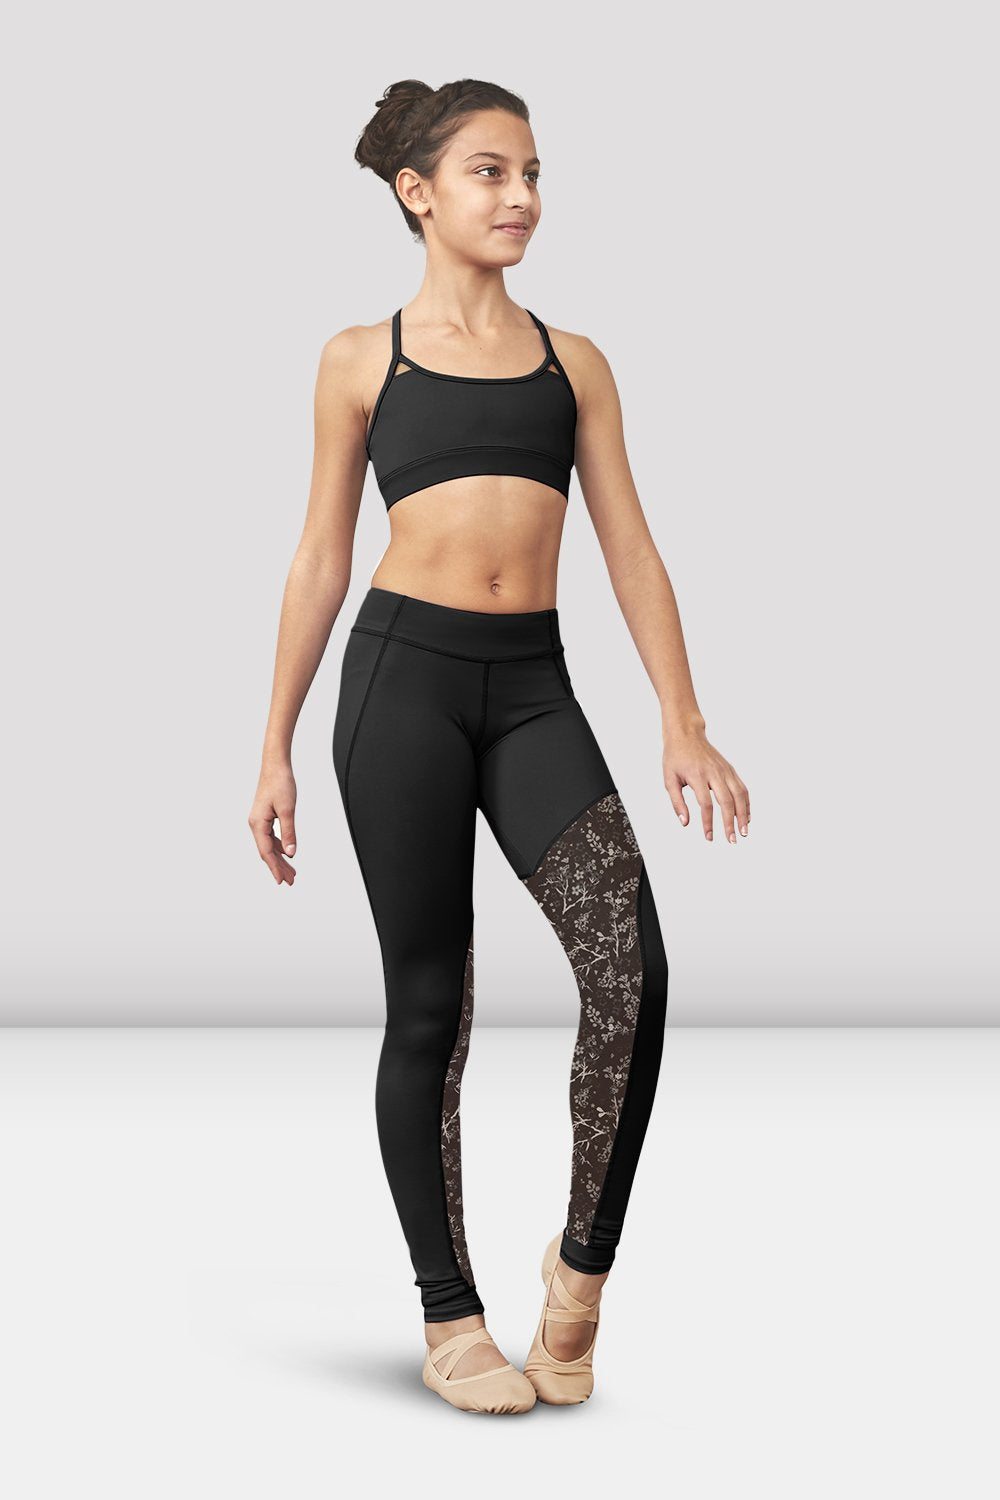 Girls Romi Printed Mesh Panel Stirrup Legging - BLOCH US